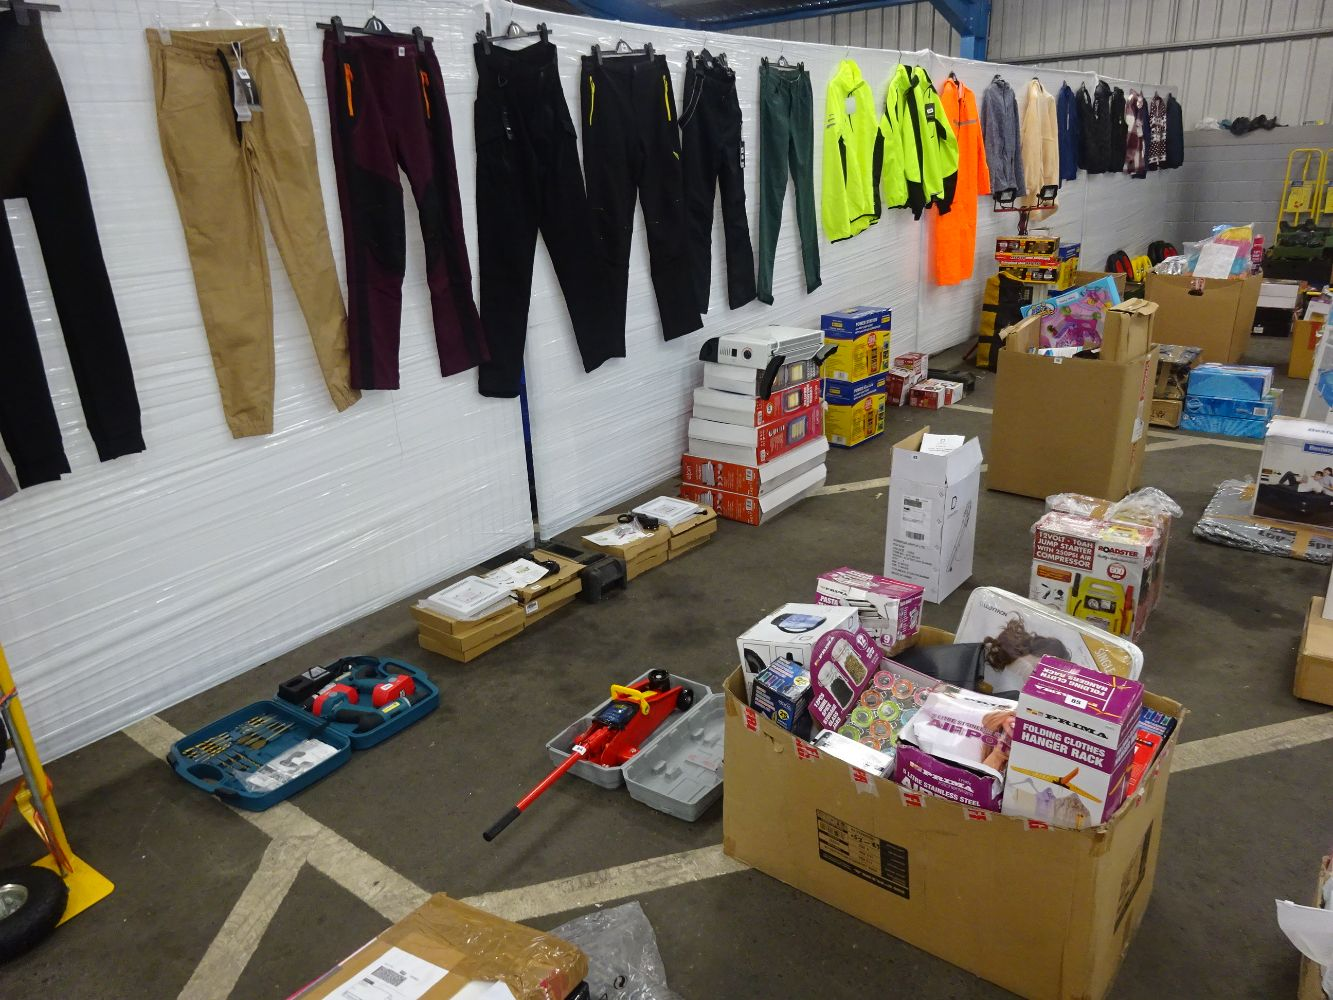 Boxes Of Raw Untested Customer Returns -  Amazon Stock, Tools, Kitchenware, Electricals, Clothing, Toys, Sun Loungers. GREAT FOR RESELLERS